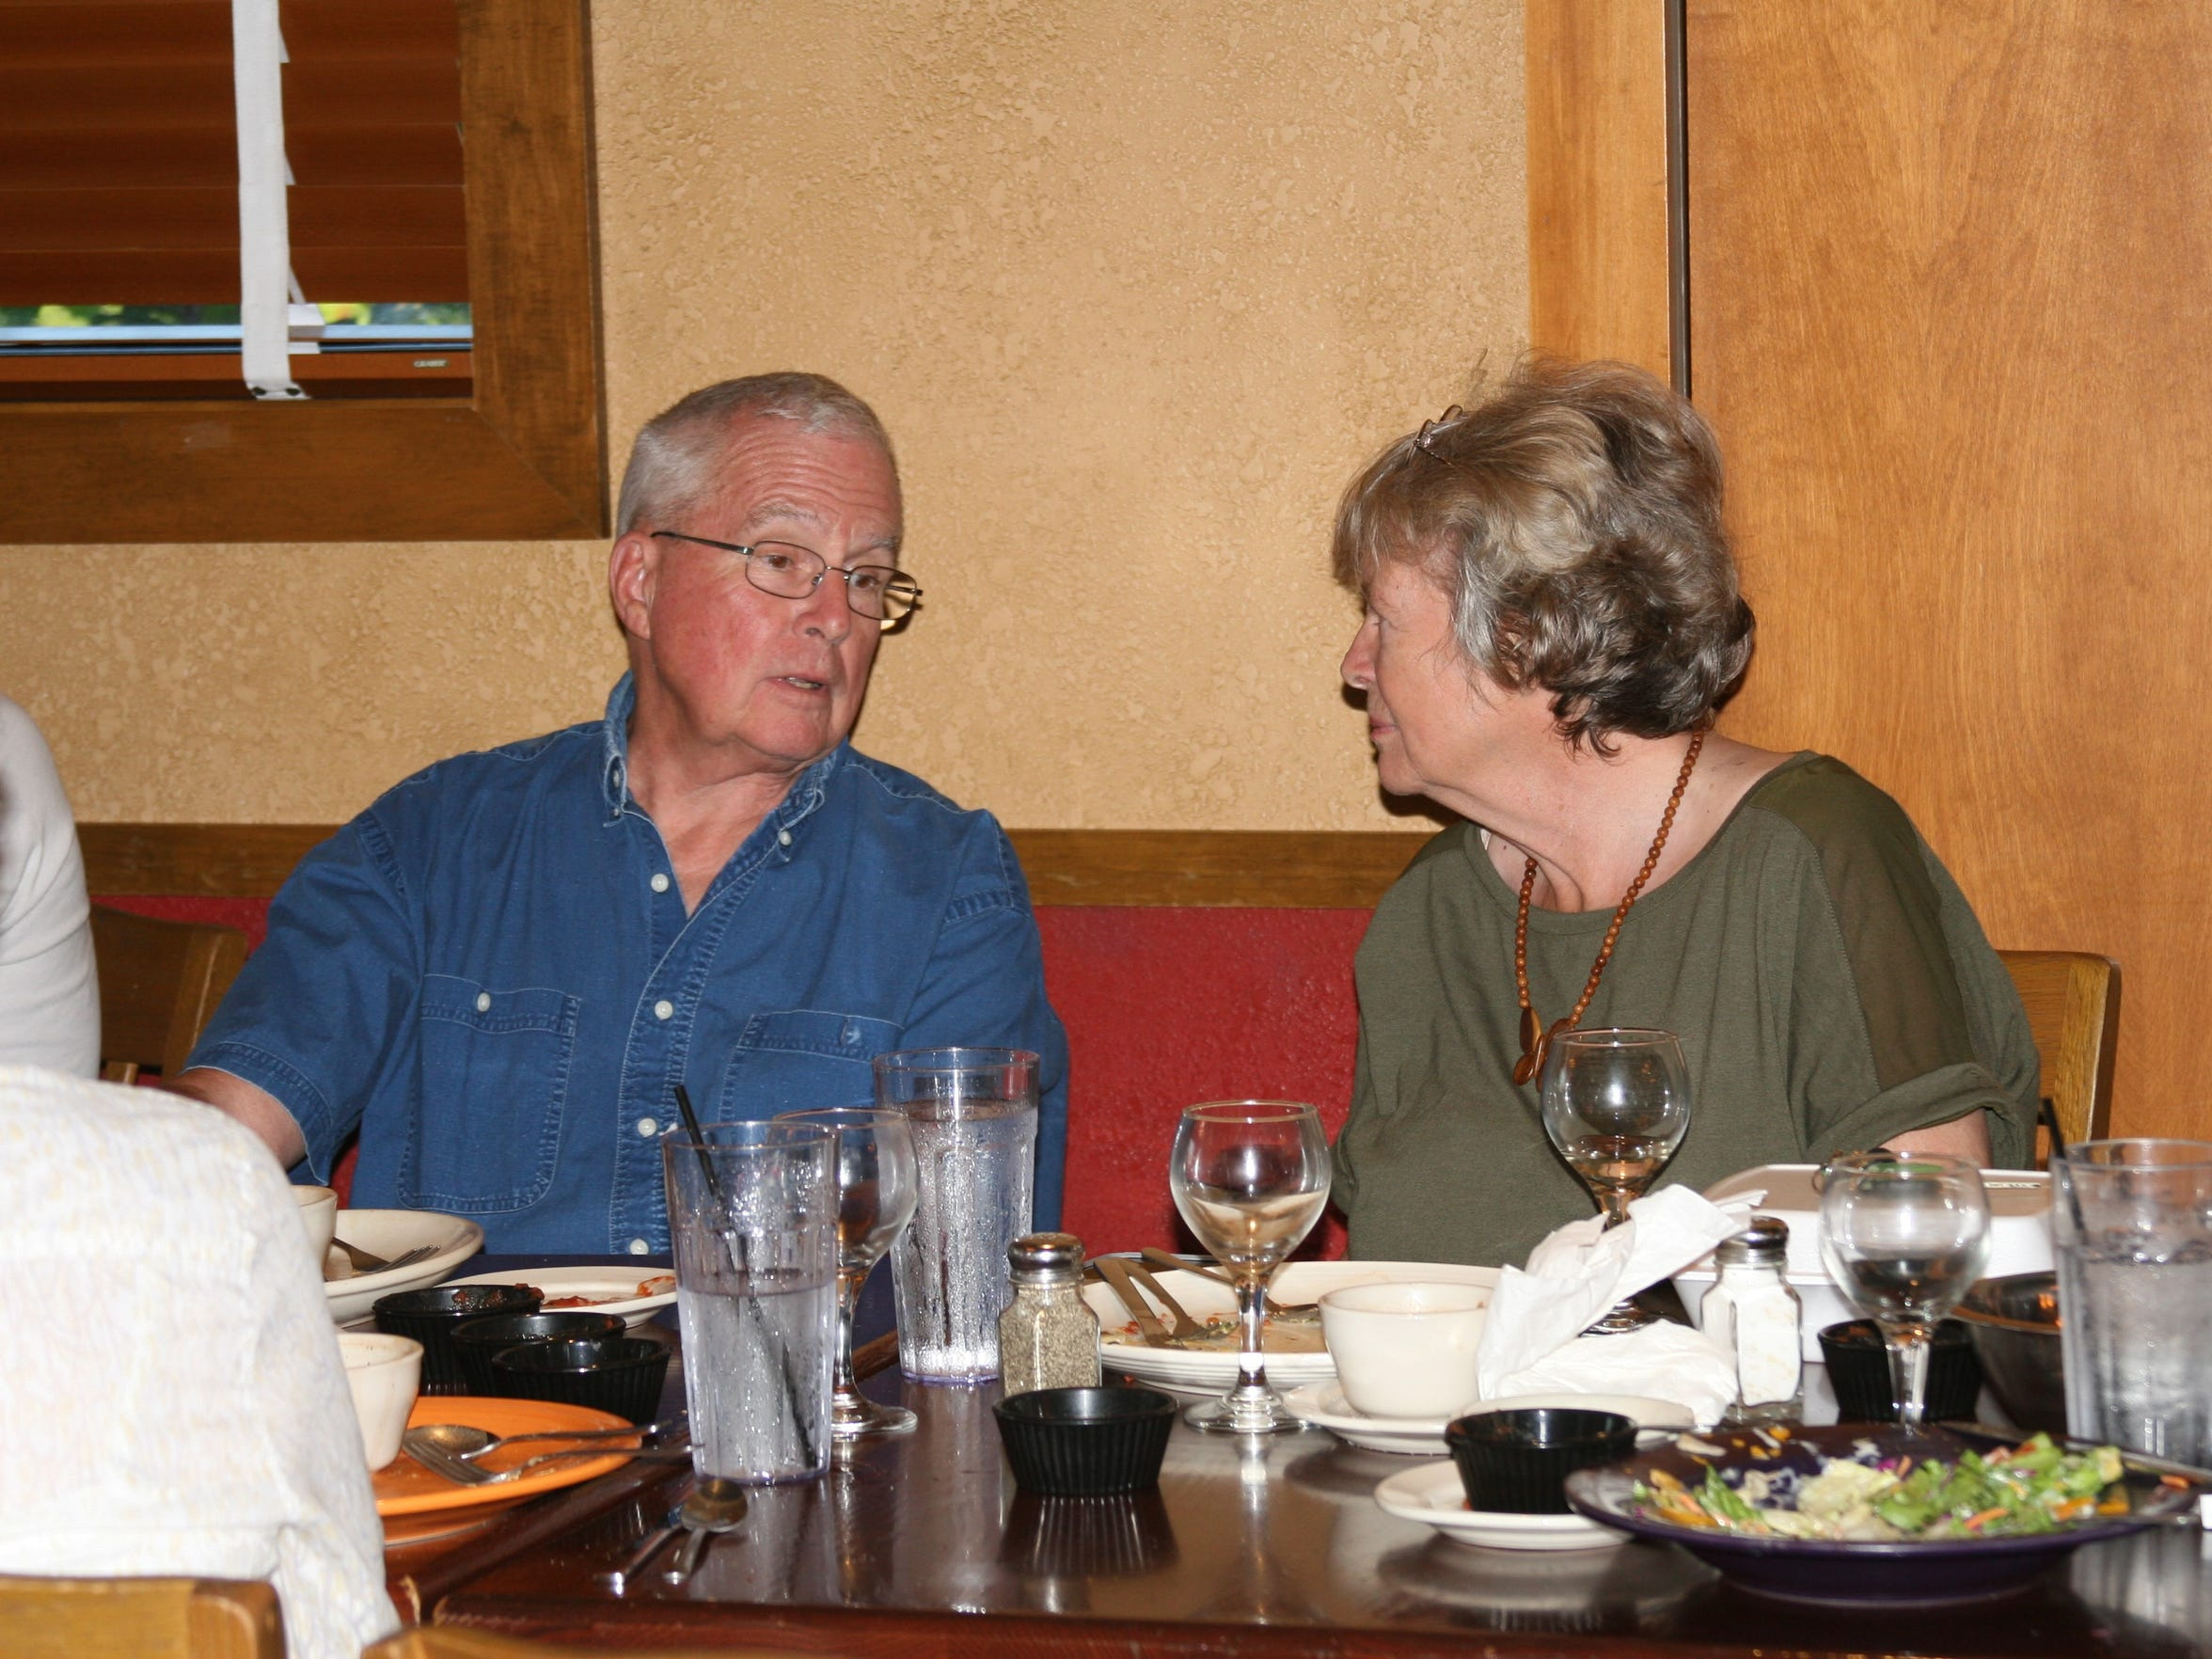 Jane Darr of Cotter and Bill Weeks Lockyer of Mountain